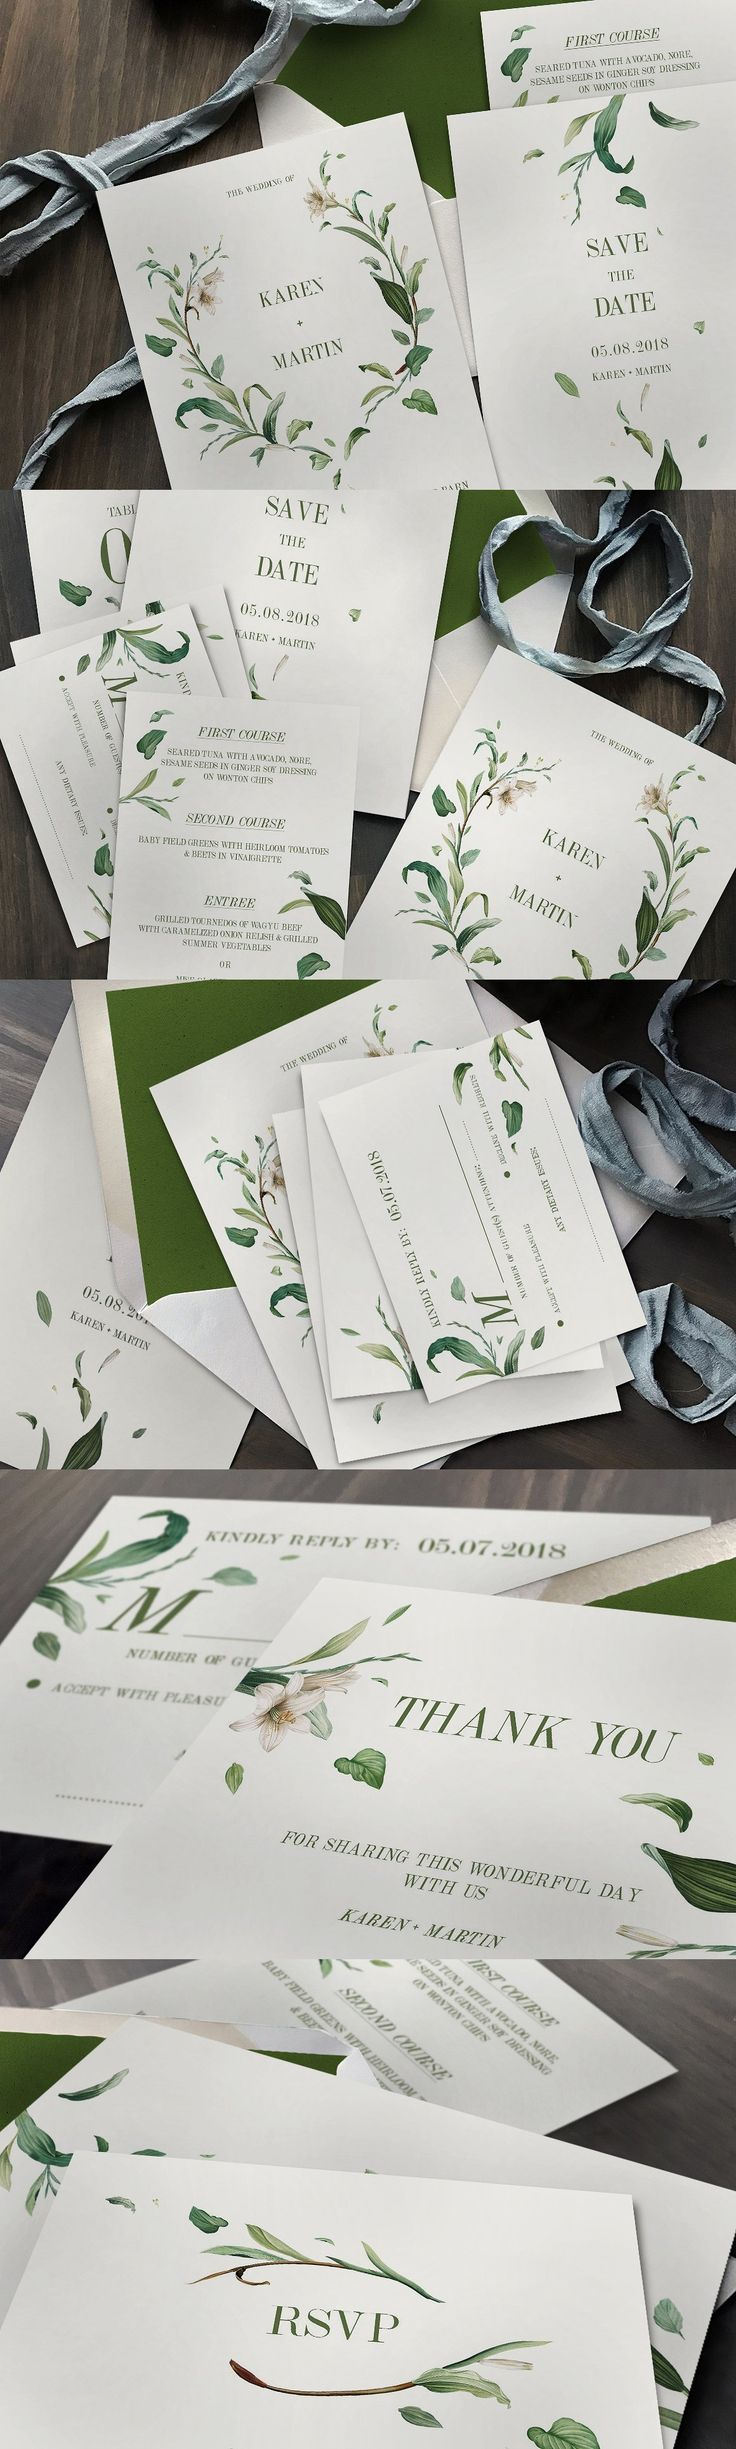 free wedding invitation psd%0A Green Foliage Wedding Invitation PSD  PDF